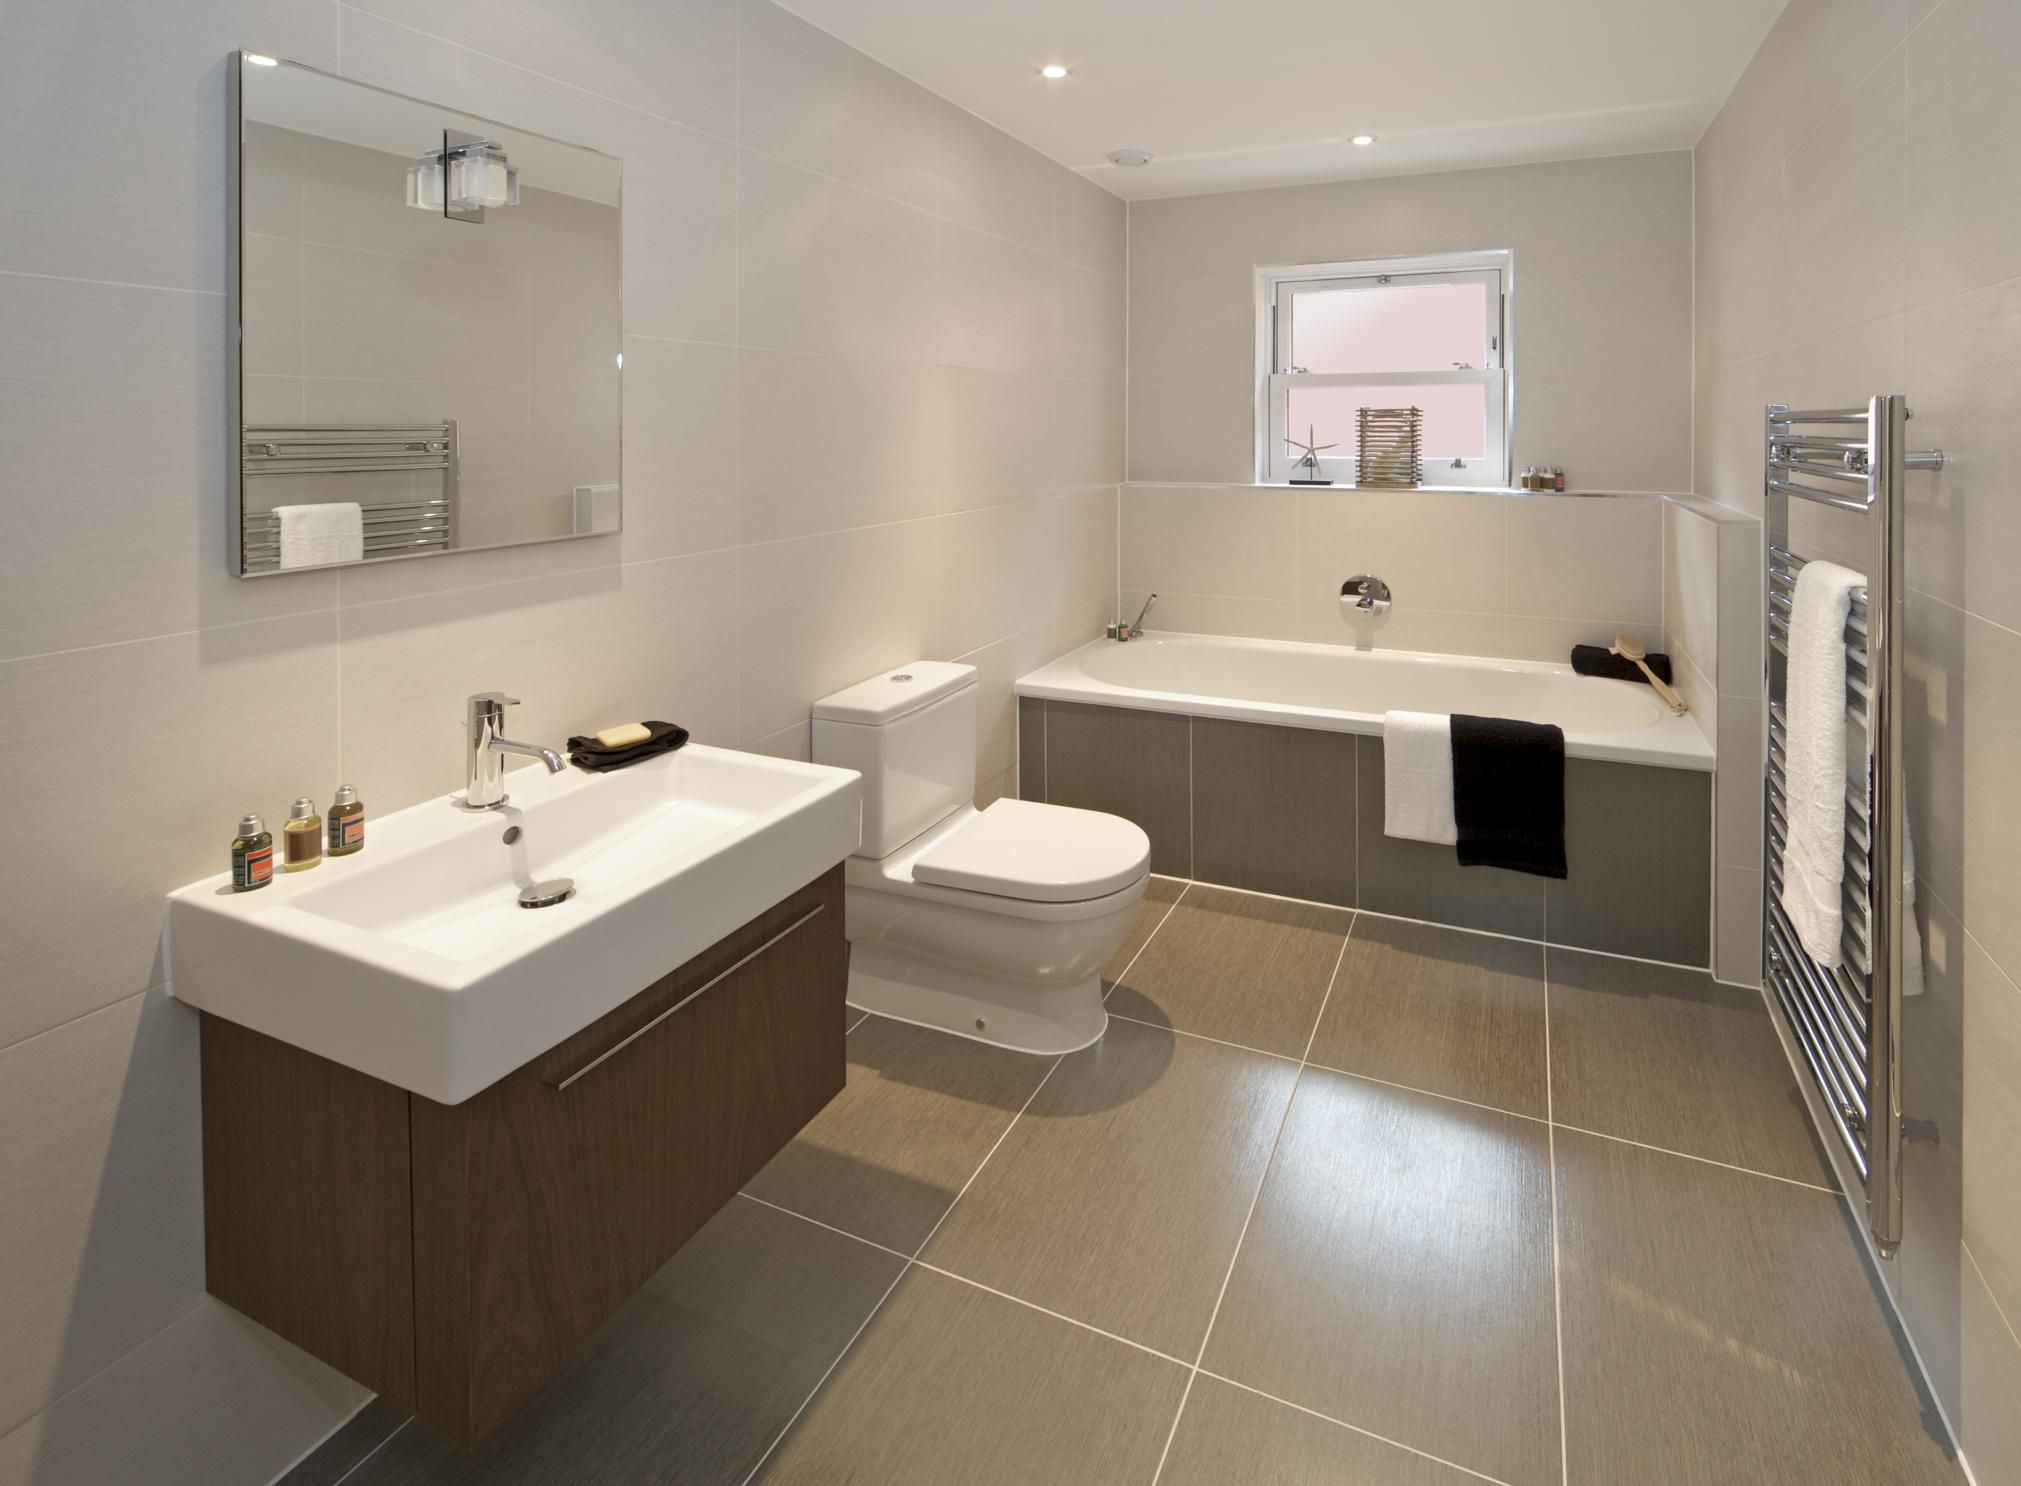 Recommended bathroom flooring - Tile Designer Gives Advice On Best Tile Size For Bathrooms